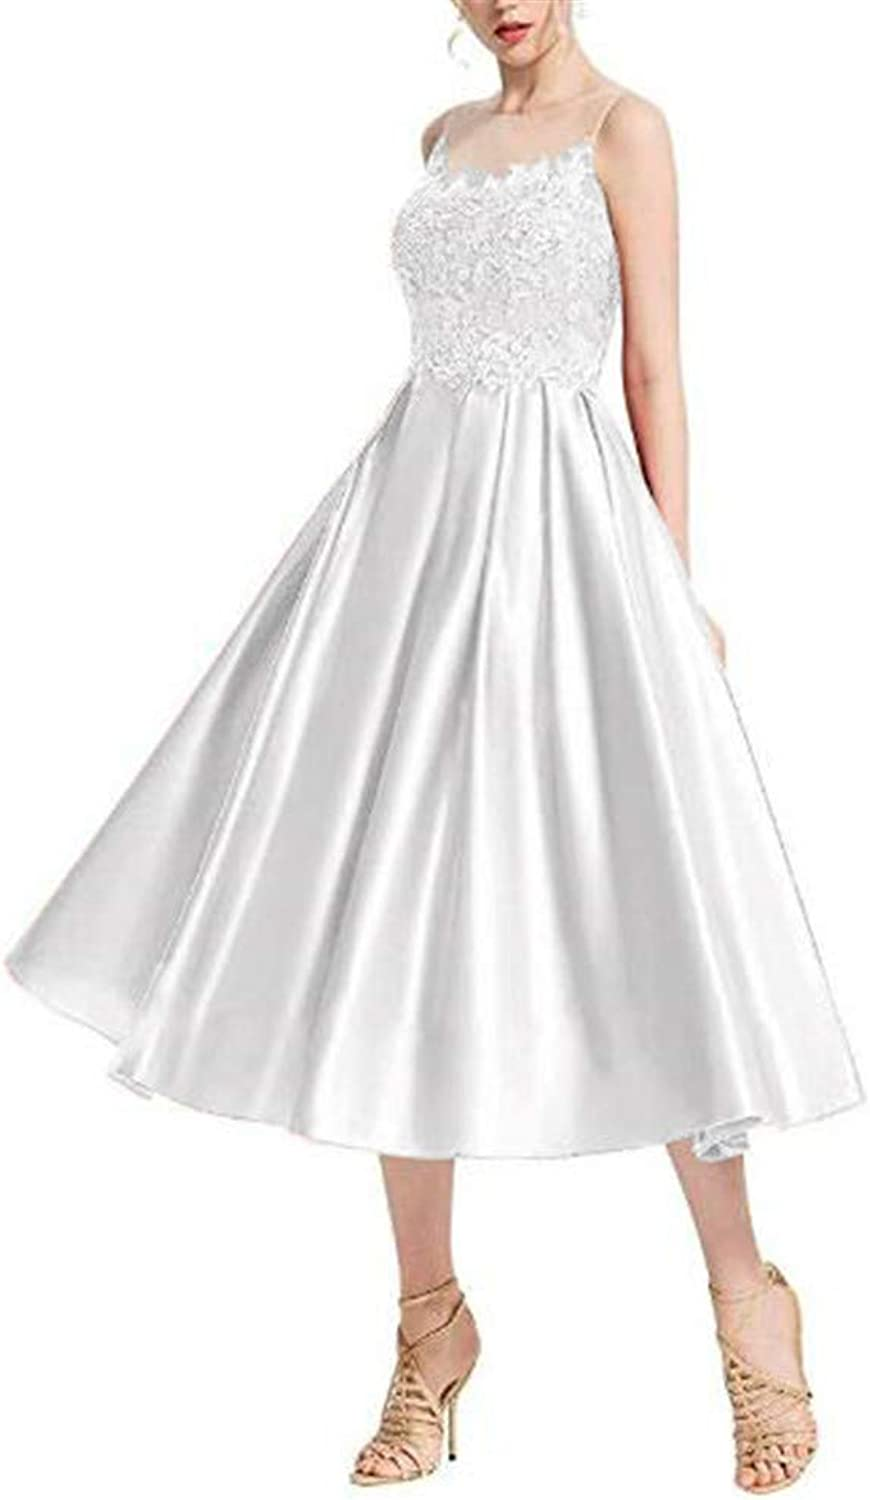 Yuki Isabelle Women's Scoope Neck Lace Applique Illusion Prom Dress Formal Satin Homcoming Party Gowns